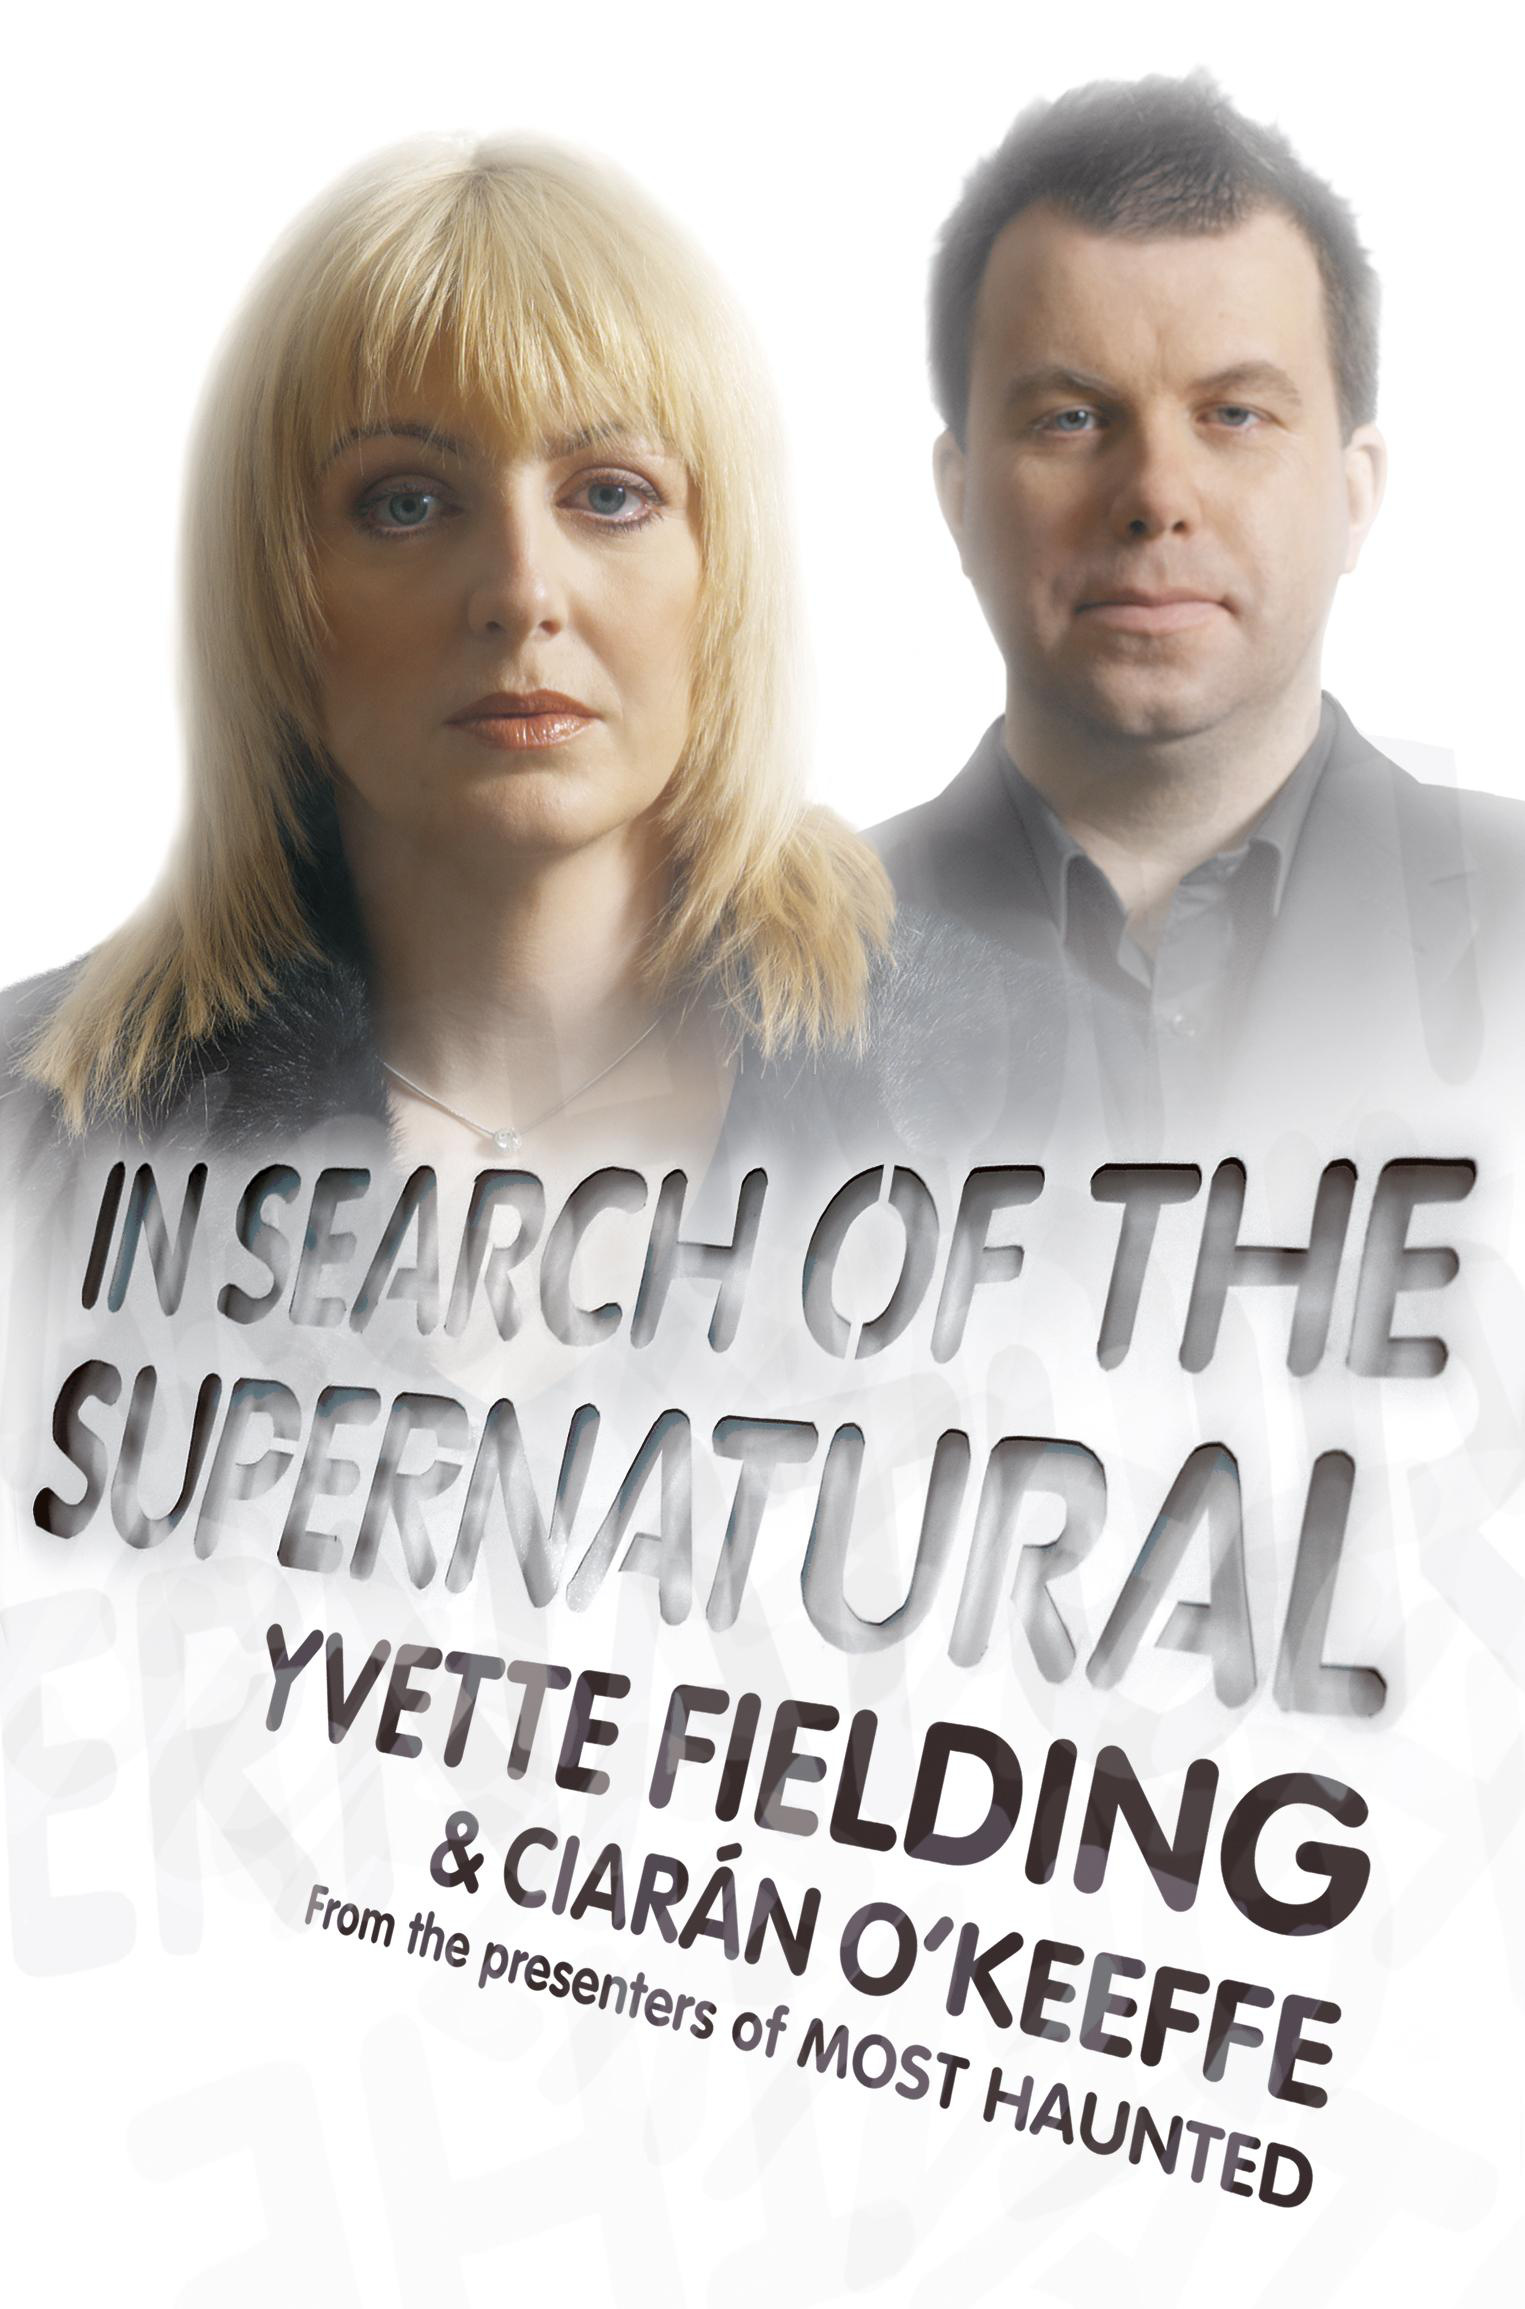 In Search of the Supernatural by Yvette Fielding - Books - Hachette